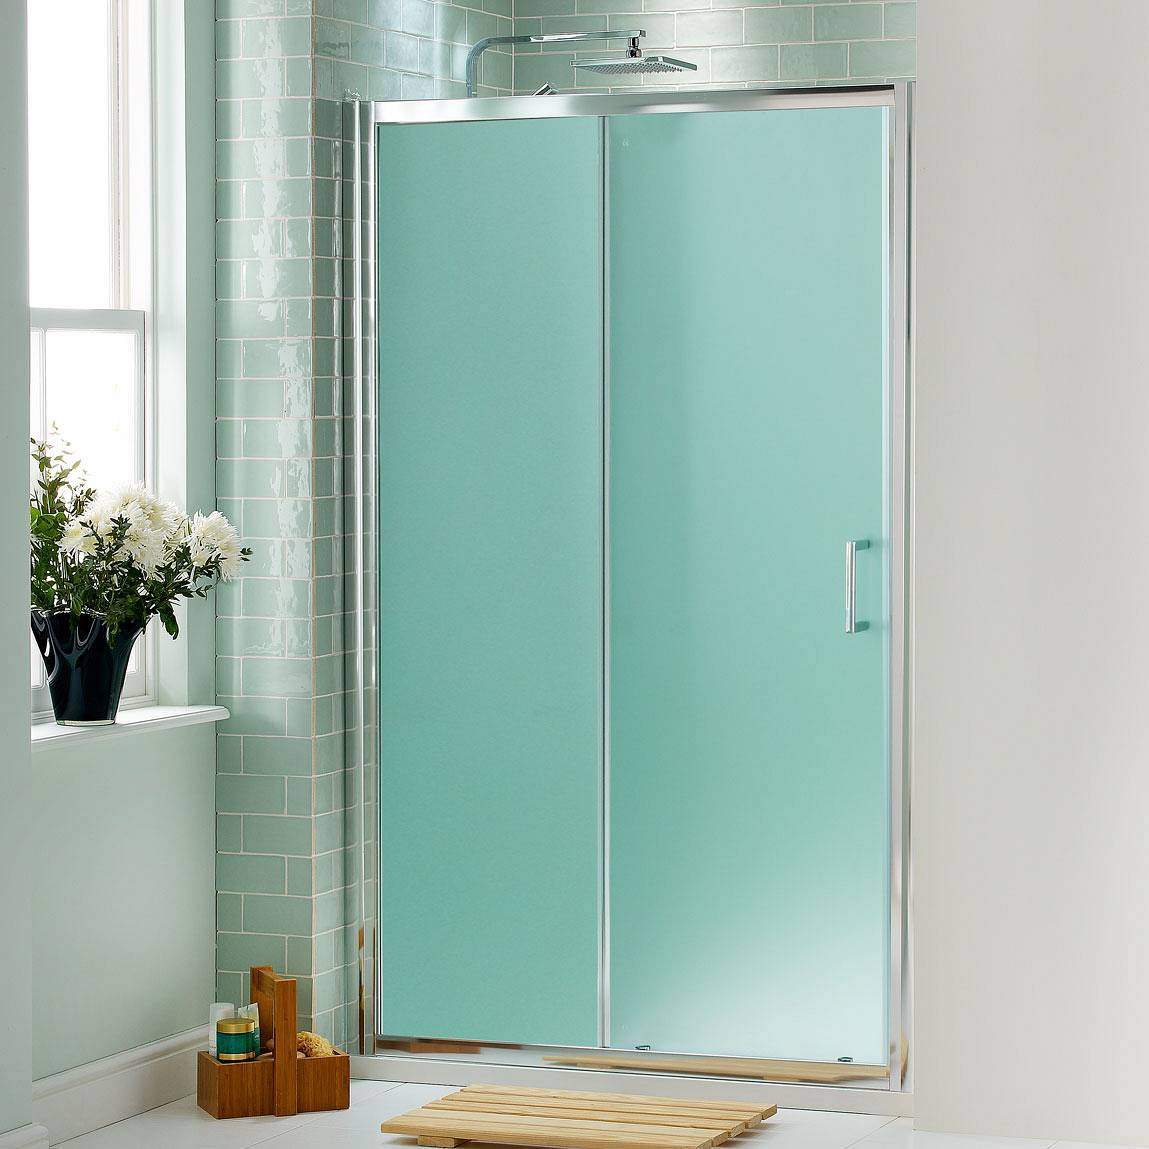 21 Creative Glass Shower Doors Designs For Bathrooms Digsdigs